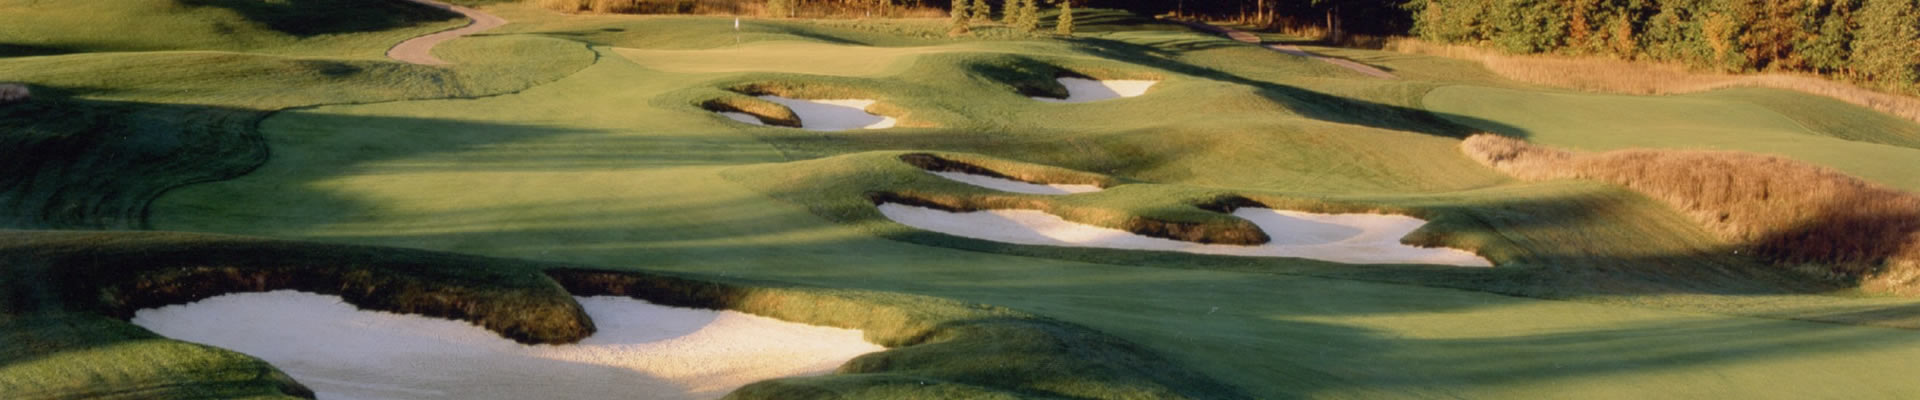 rochester golf courses header